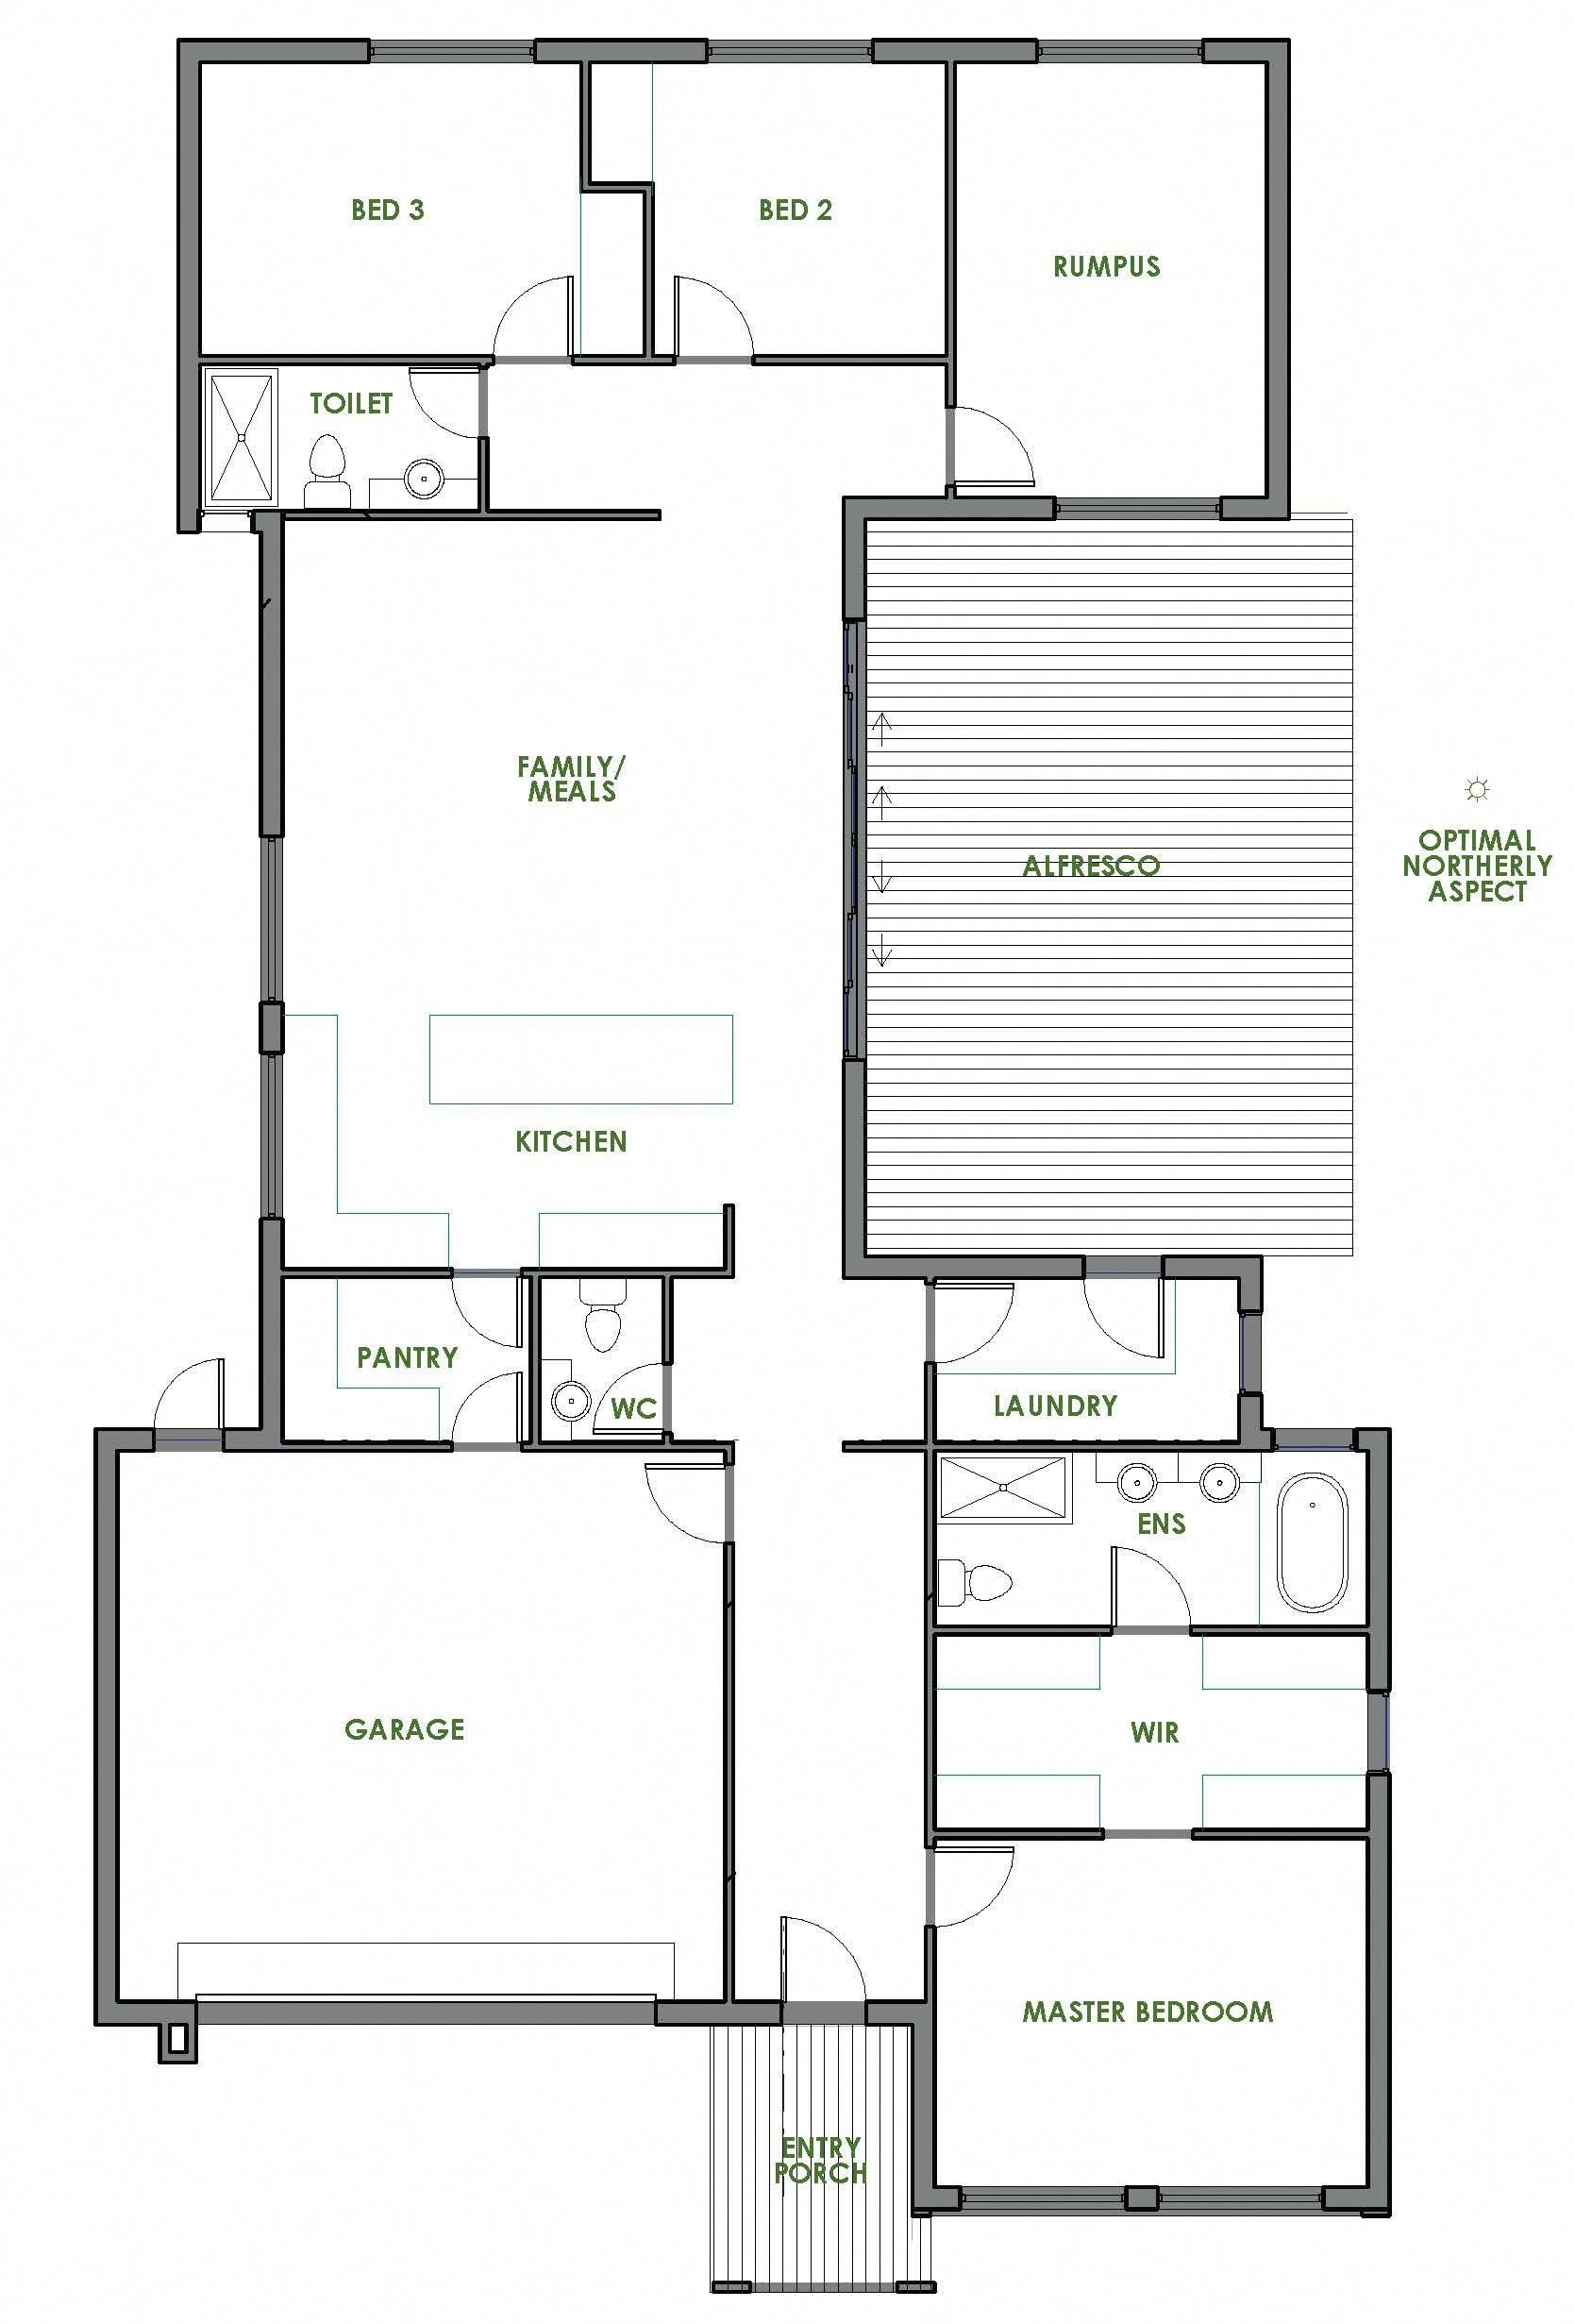 Green Energy Efficient House Plans Best Of Aberdeen Energy Efficient Home Design Green Homes